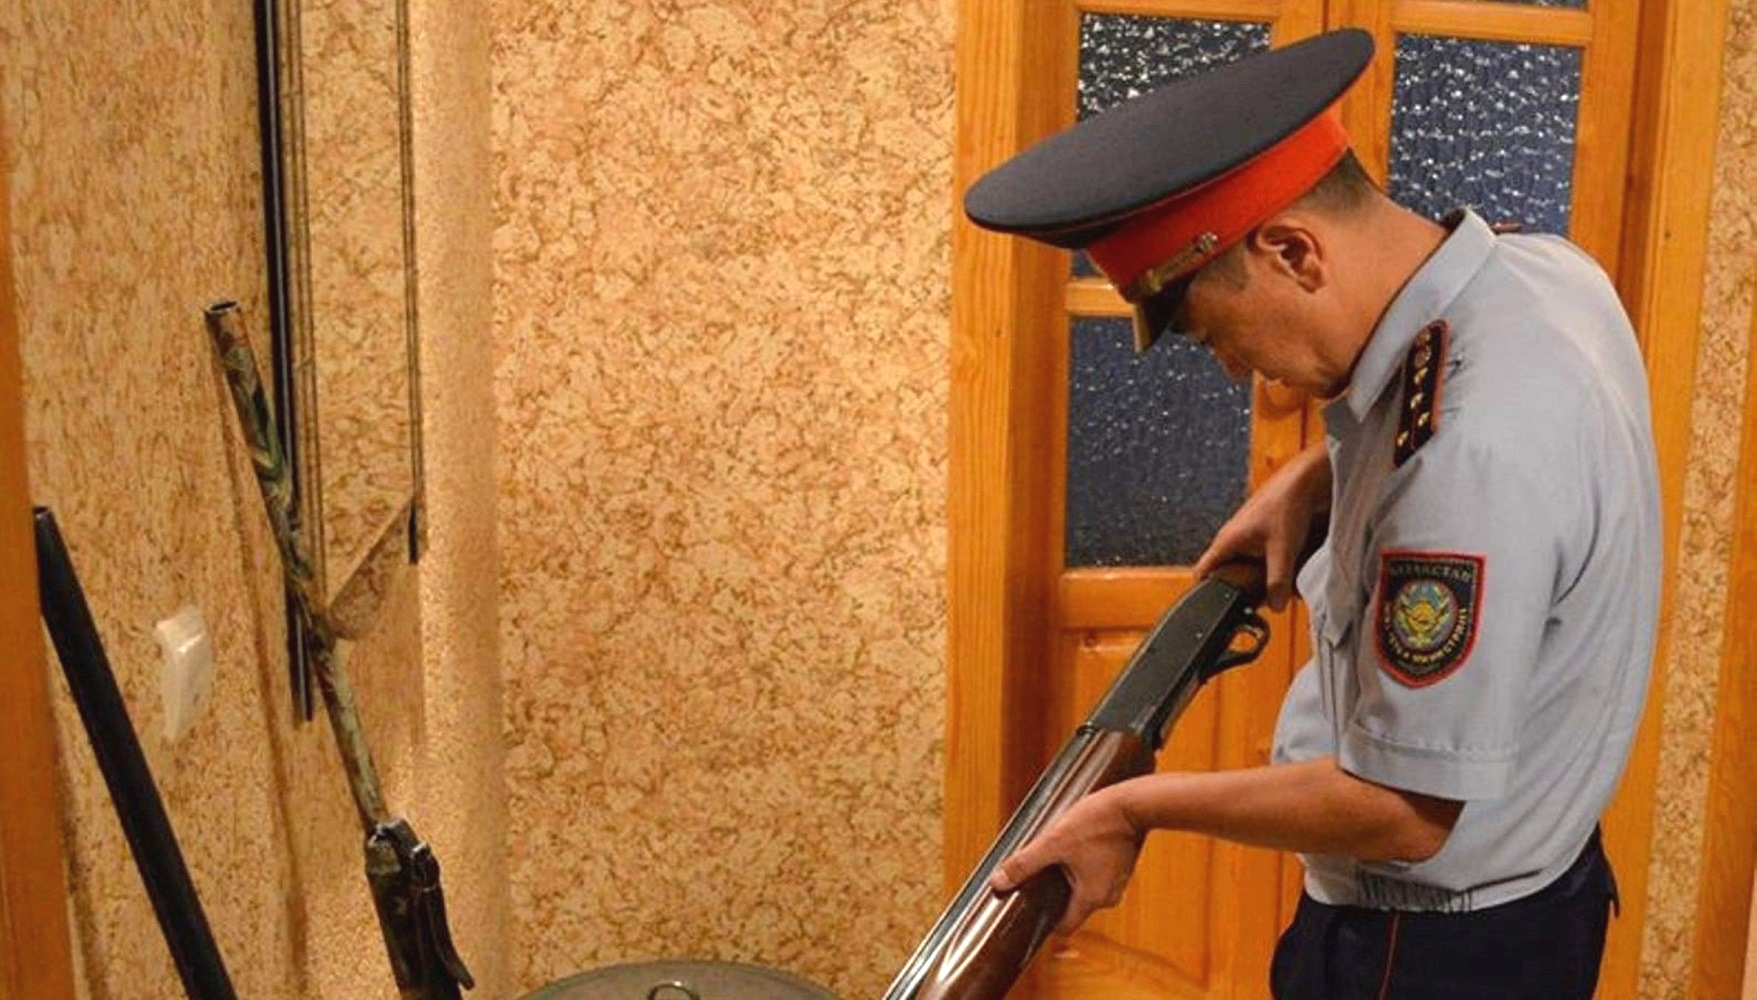 Kazakhstan strengthens restrictions on gun ownership